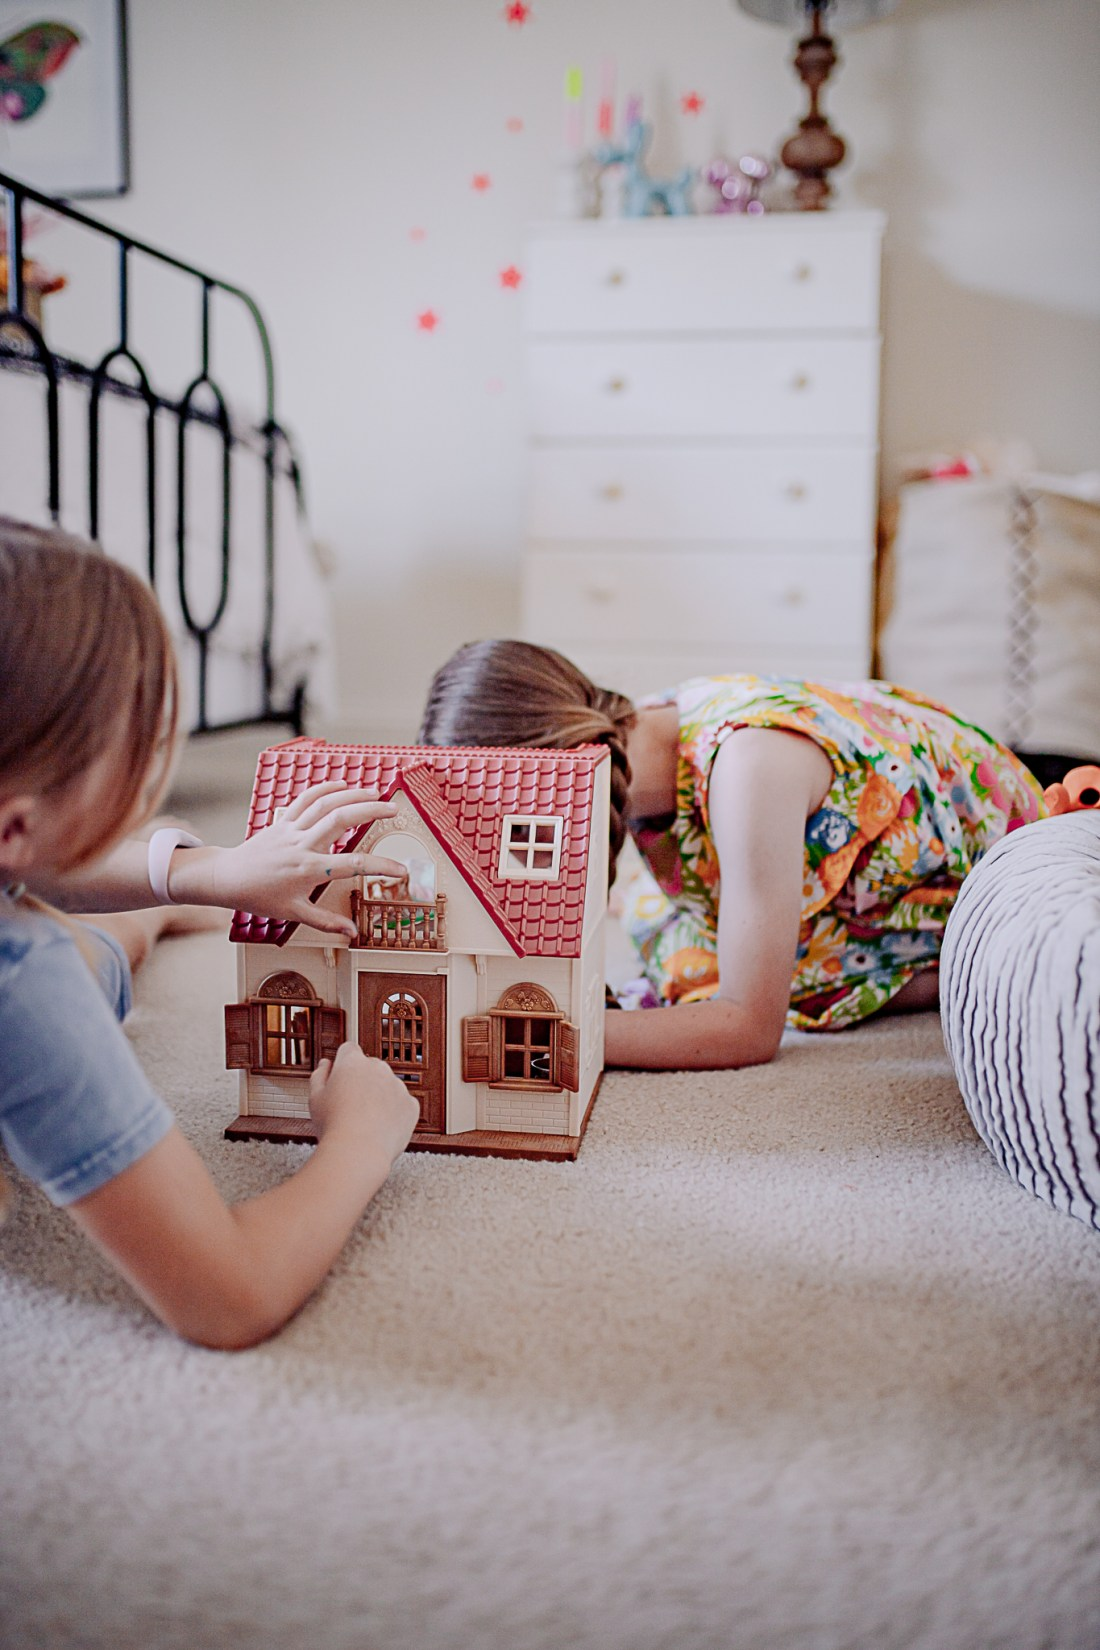 Kids Room by popular Nashville life and style blog, Modern Day Moguls: image of two young girls playing with a Calico Critters house.